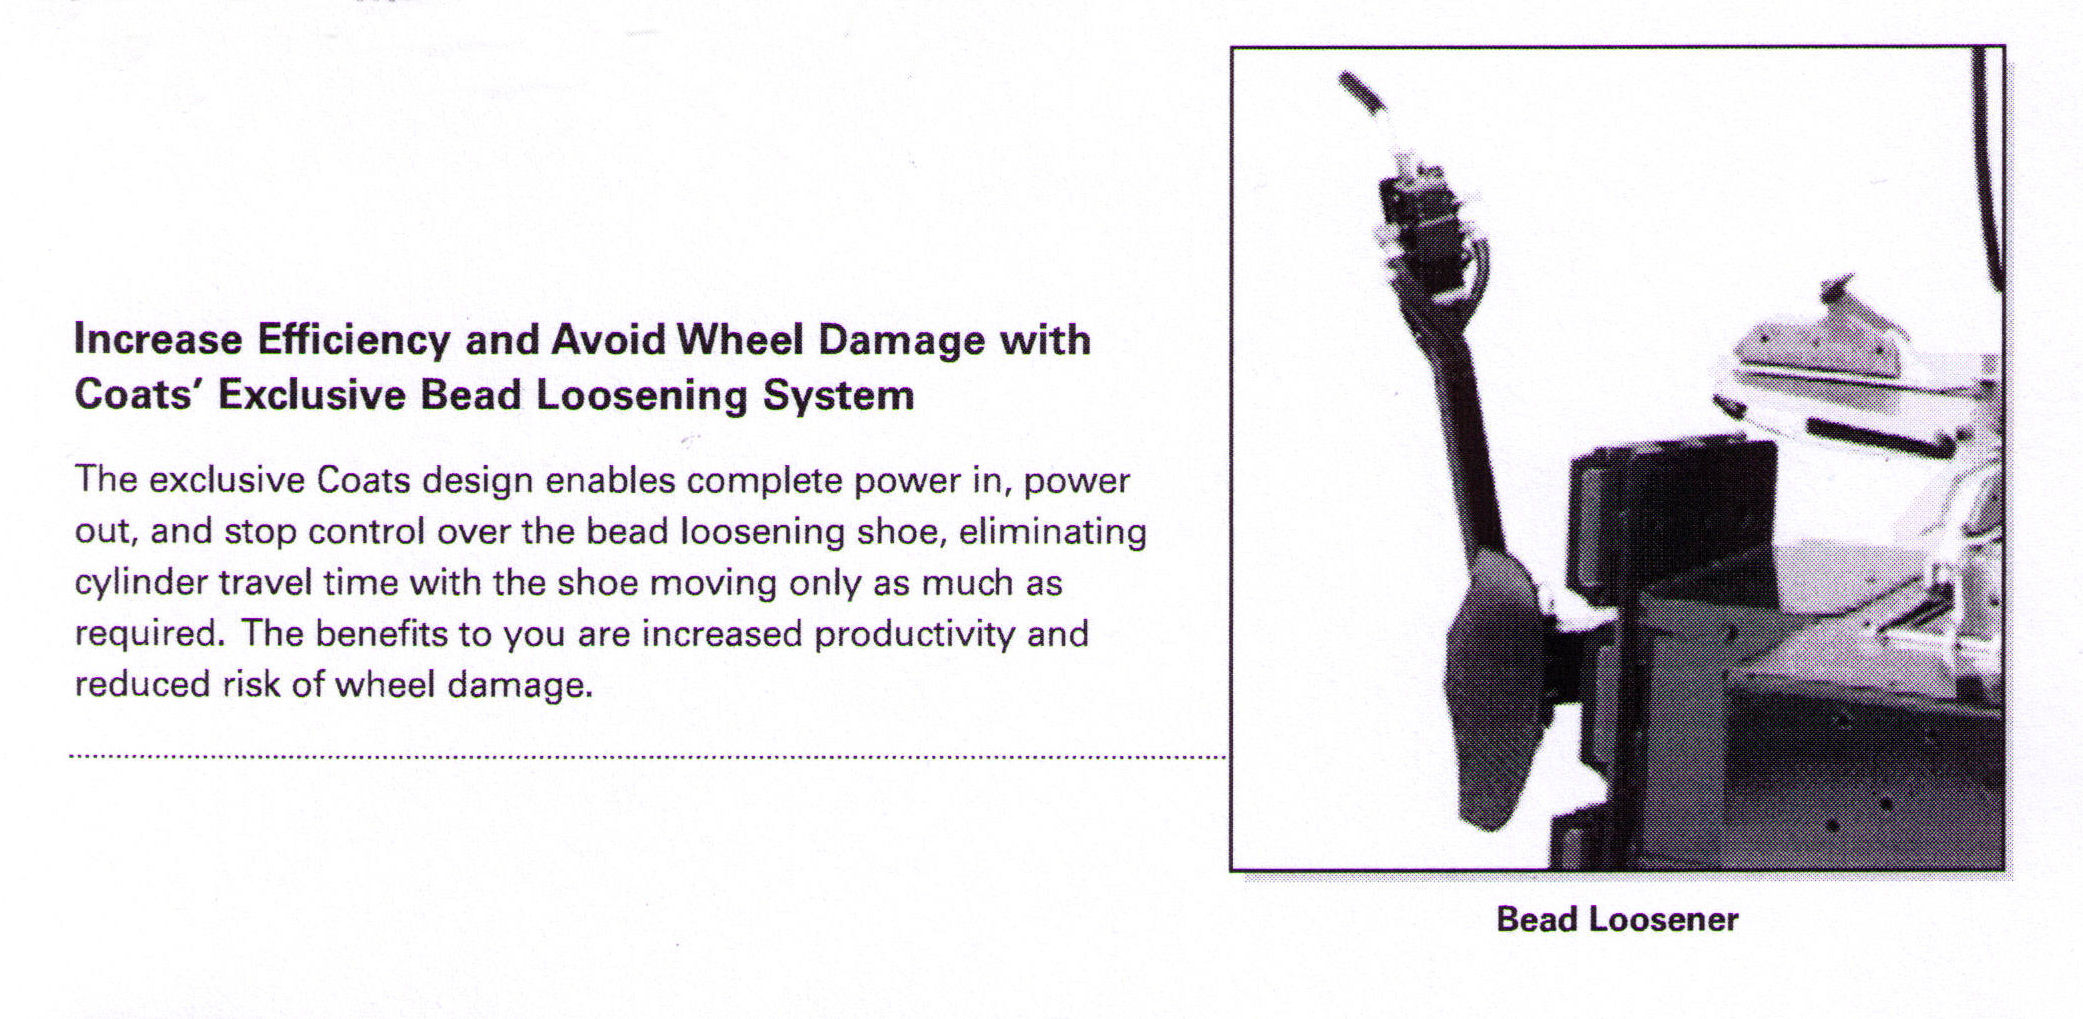 Avoid Wheel Damage With Coats' Exclusive Bead Loosening System